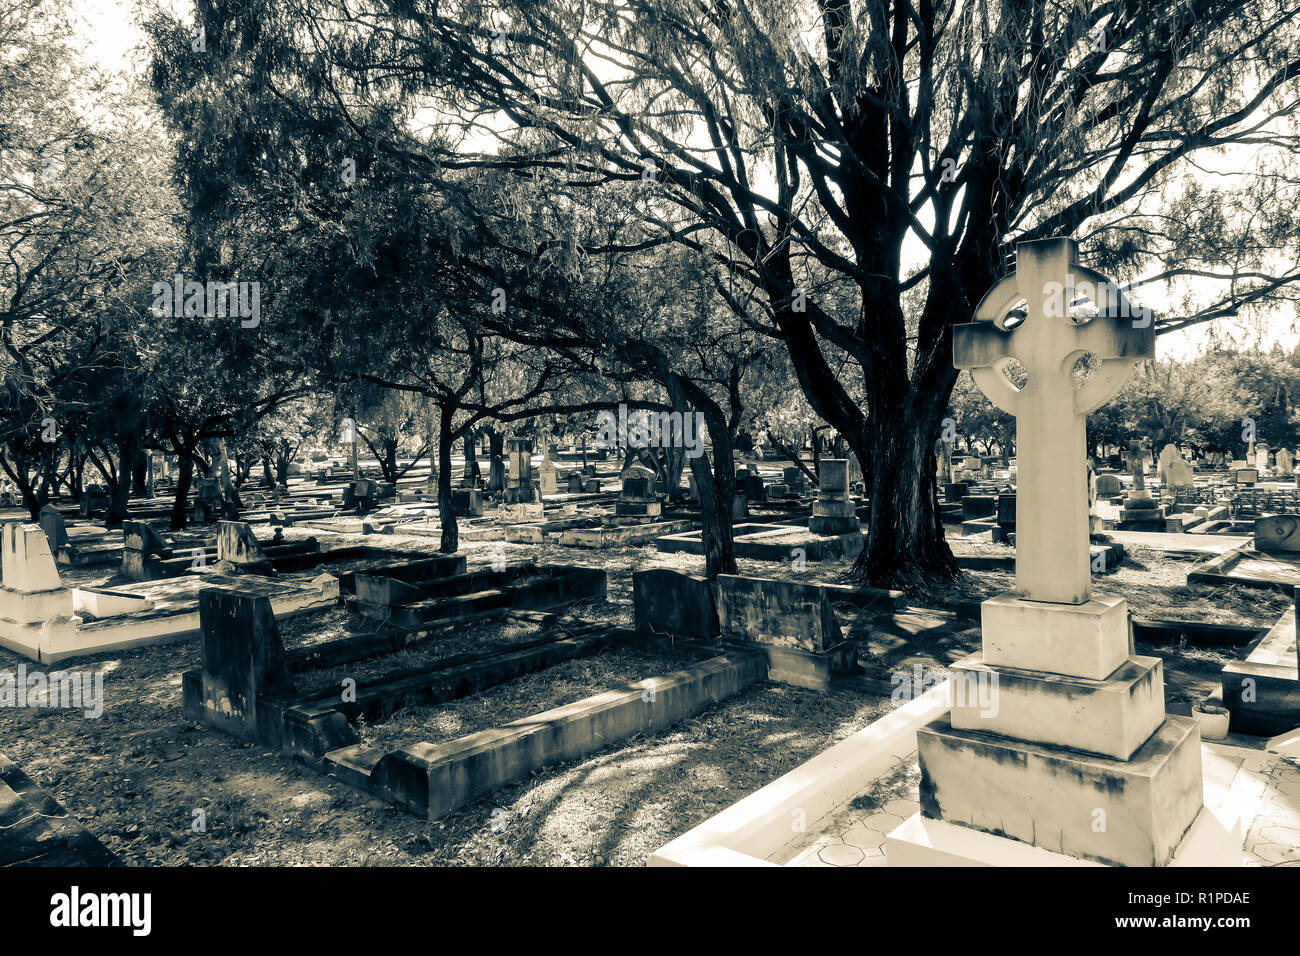 Cemetery view - Stock Image